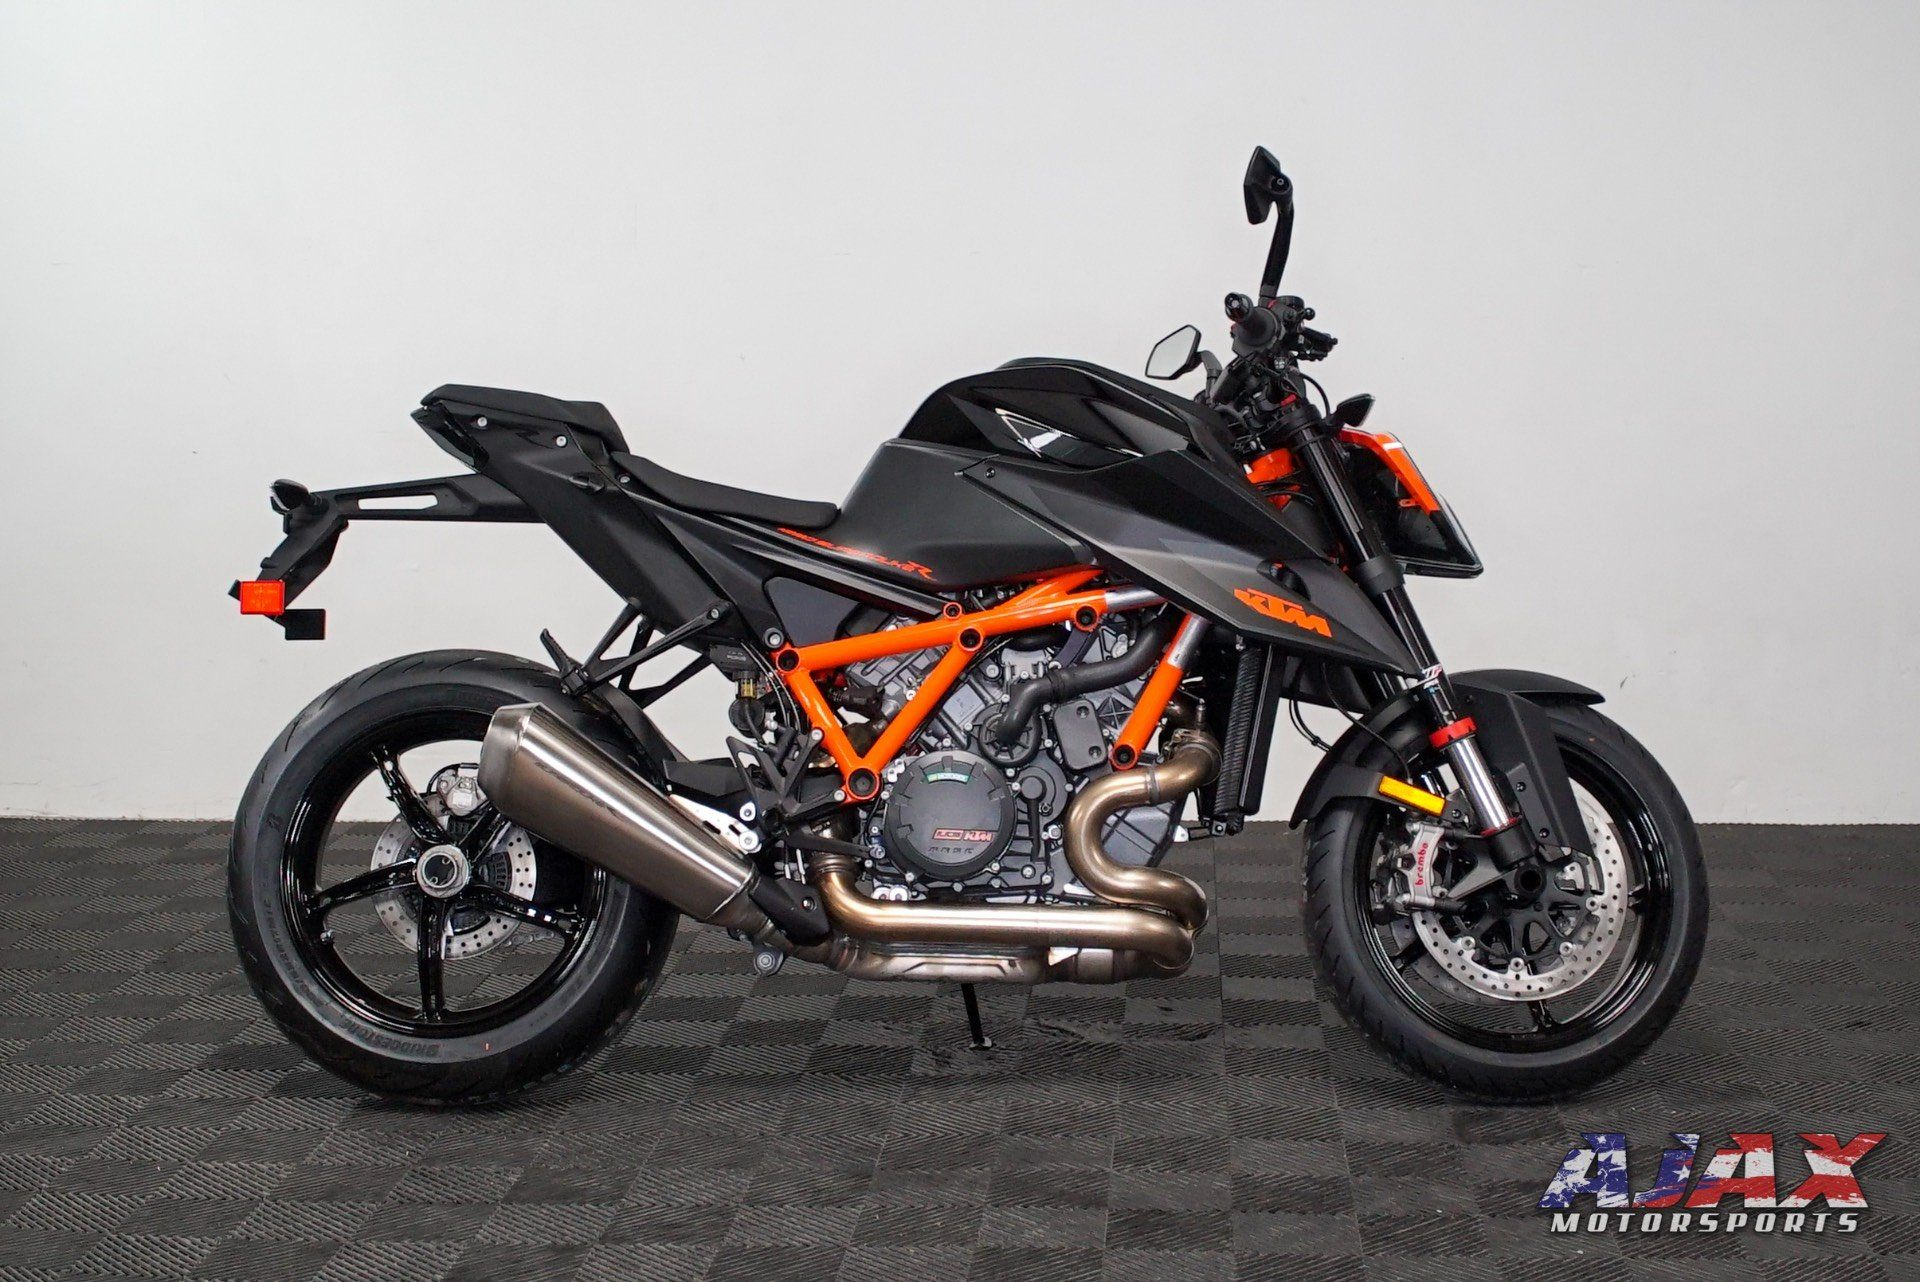 2020 KTM 1290 Super Duke R in Oklahoma City, Oklahoma - Photo 1